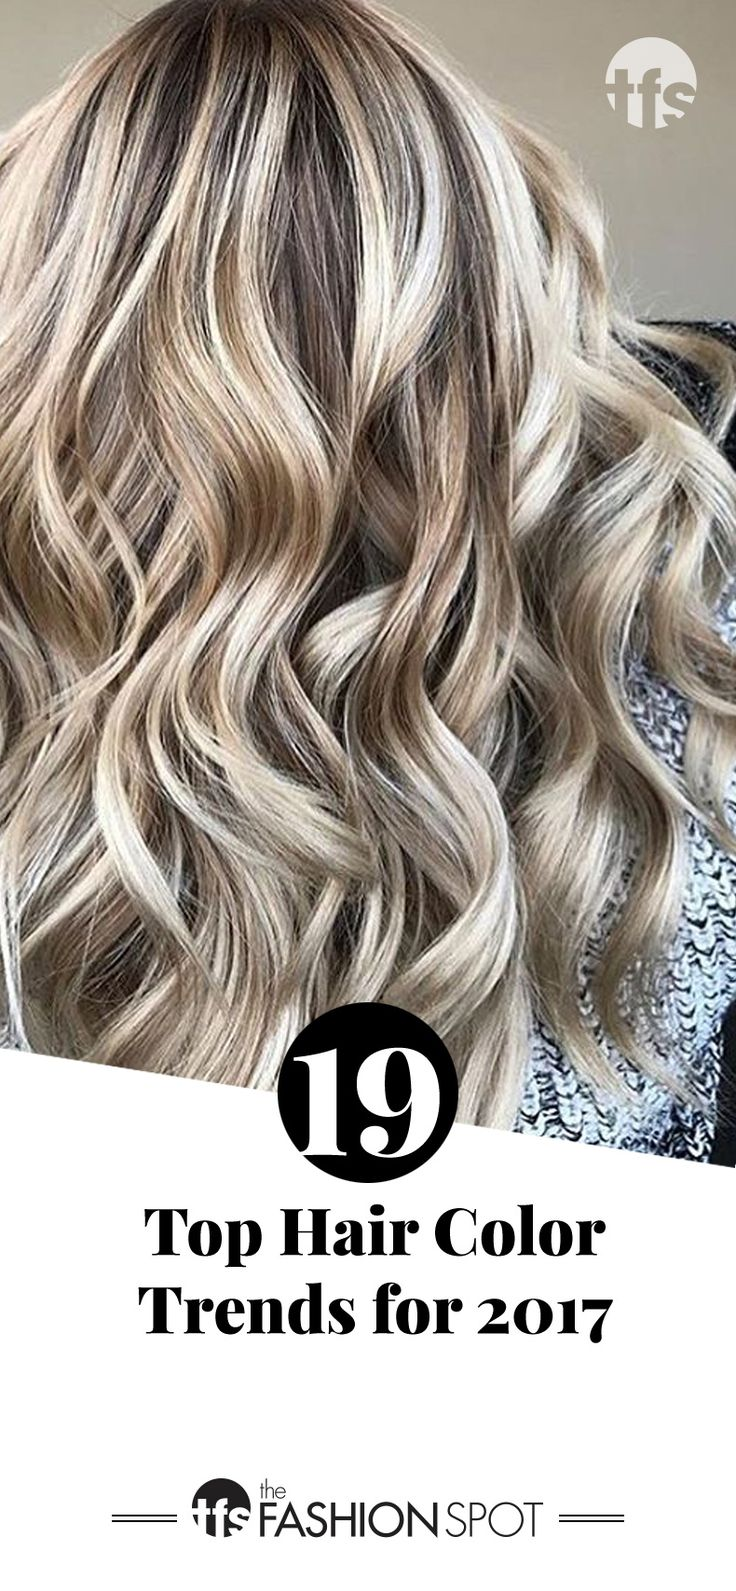 Best 25+ Popular hair colors ideas on Pinterest | Hair ...